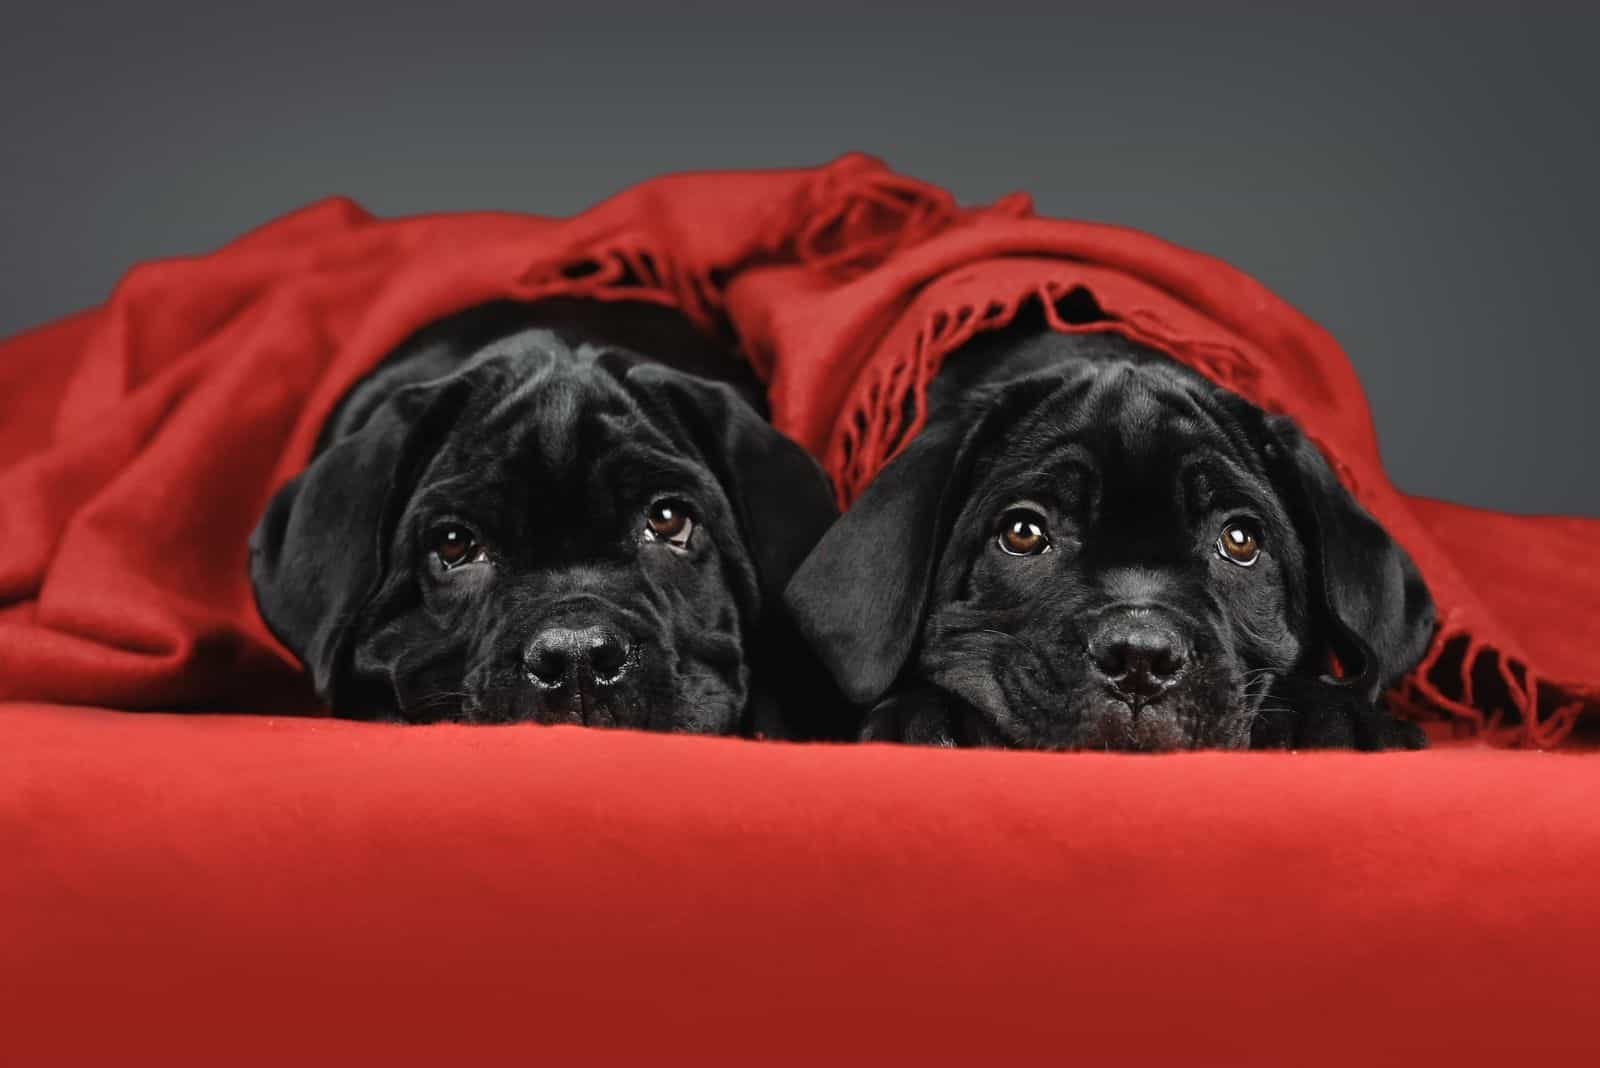 two cute corso puppies under a red blanket with gray background